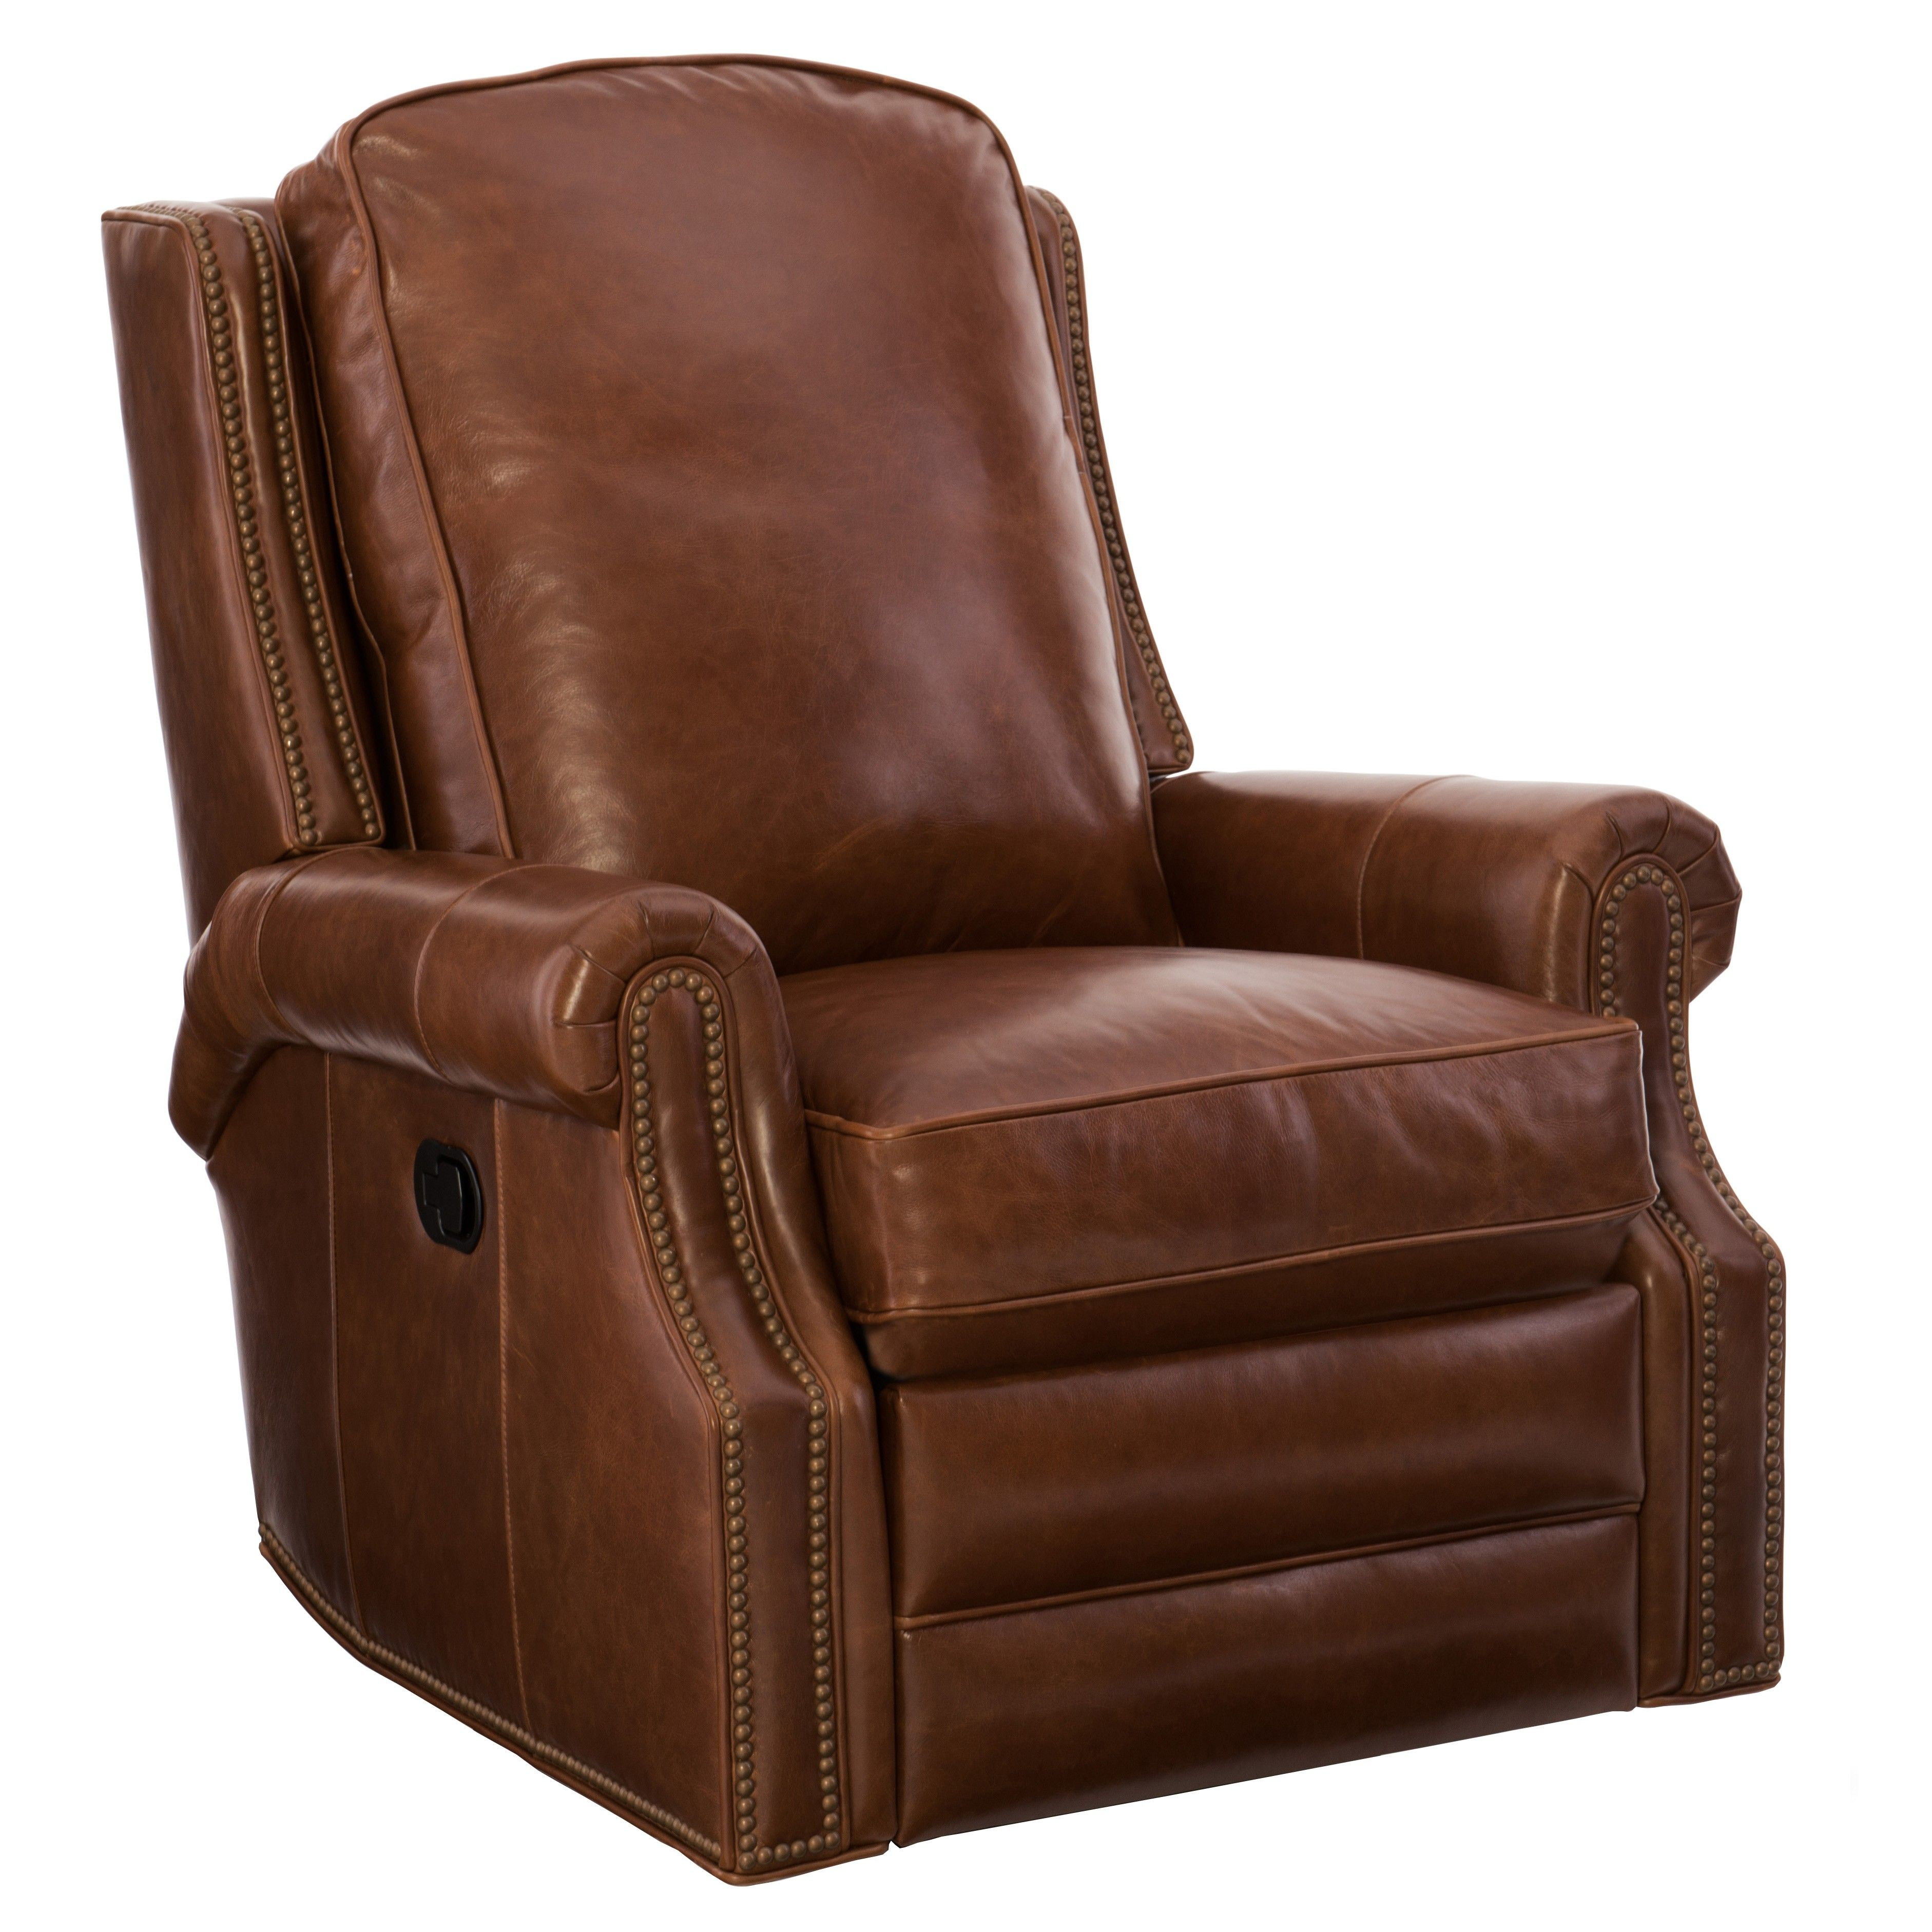 Price Will Vary Depending On Leather Or Fabric Selection And May Not Be For Product As Shown Please Call Details Wall Hugger Recliner Loose Pillow